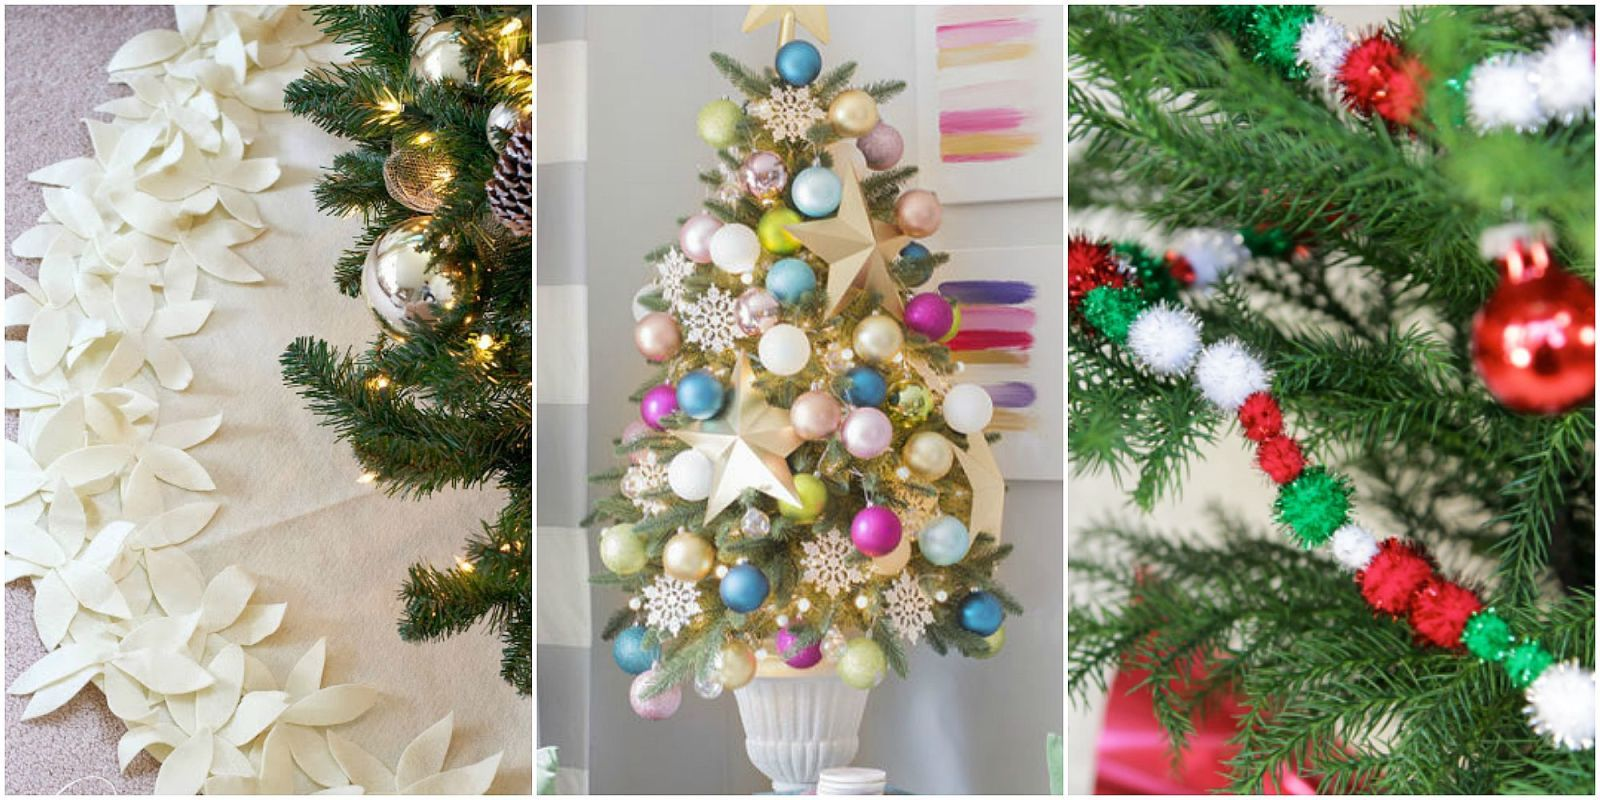 17 unique christmas tree decorations 2016 ideas for for Decoration xmas tree